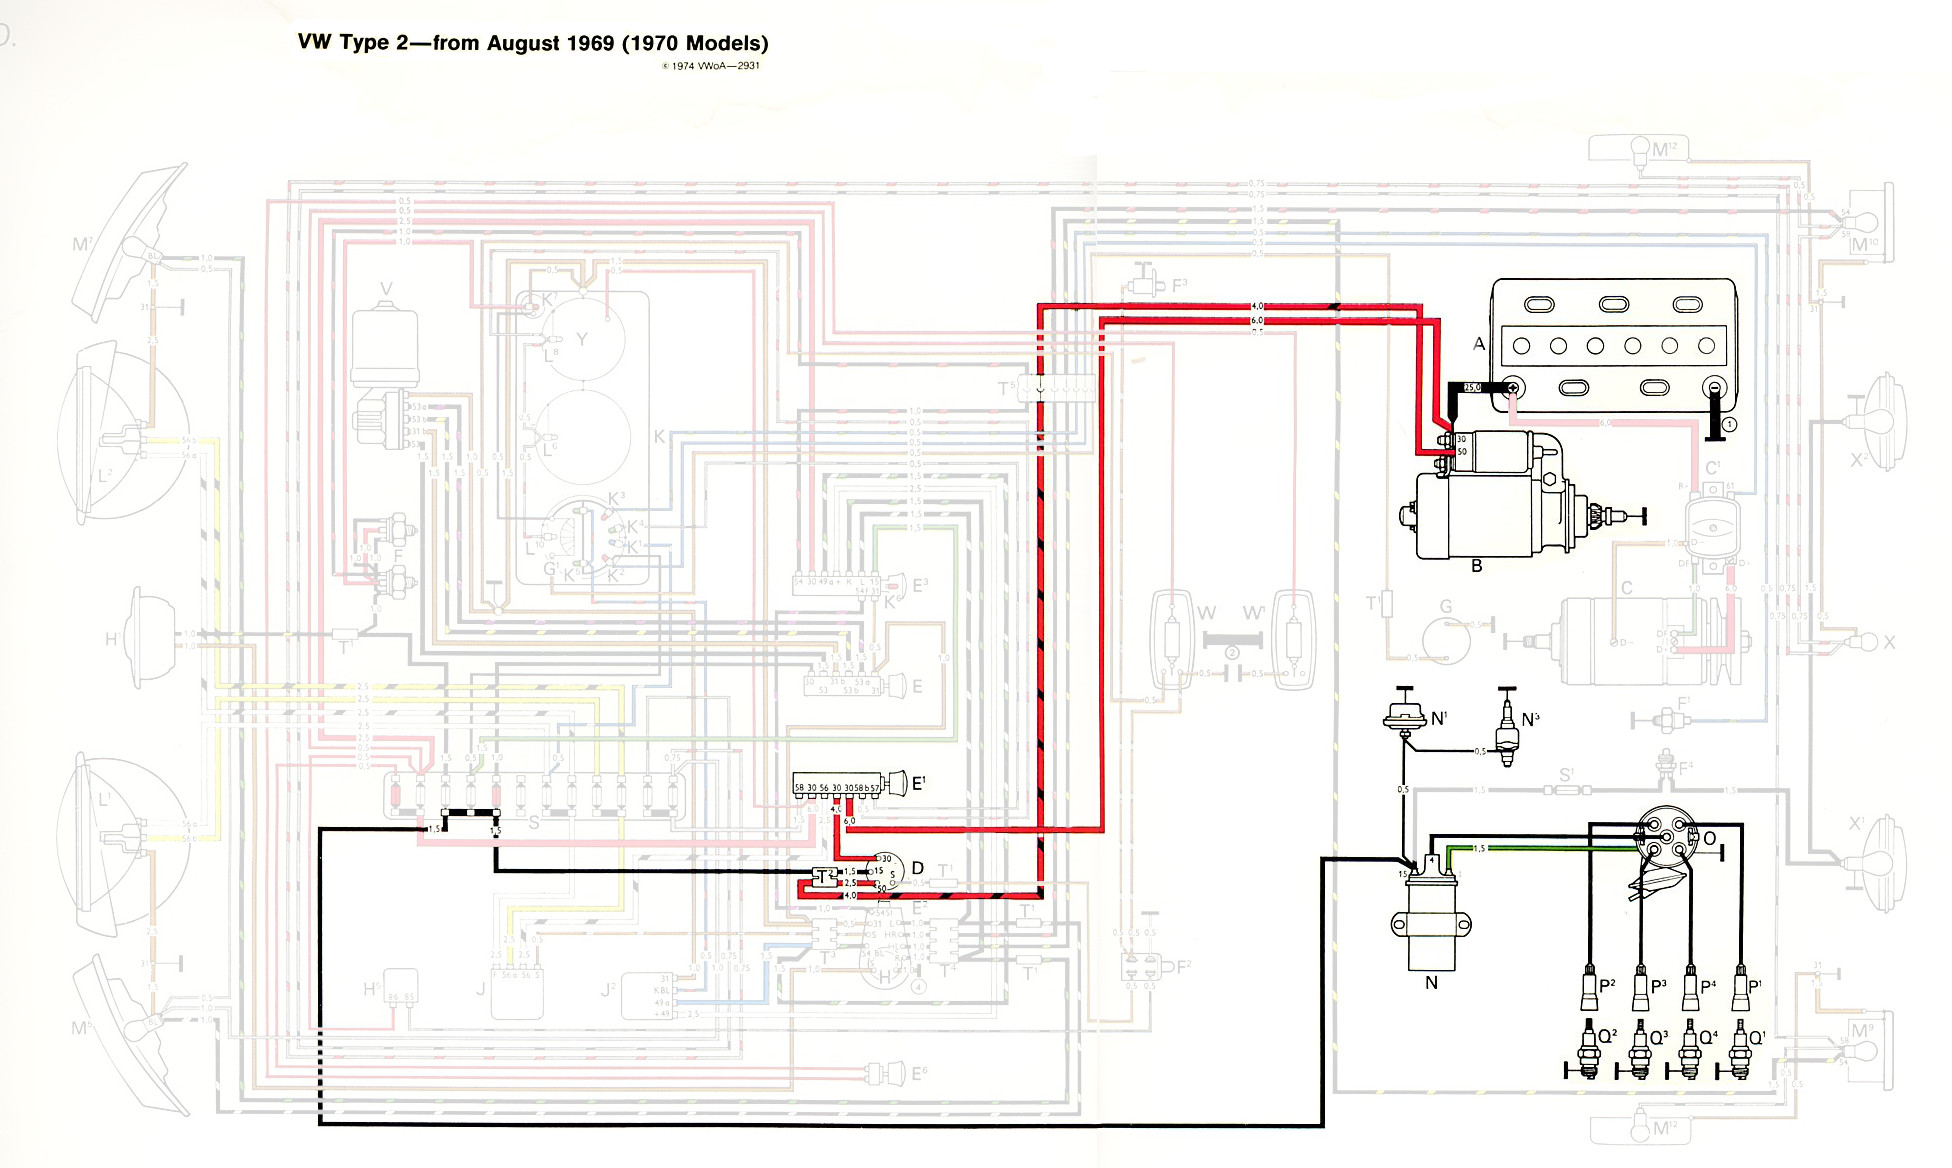 Type 2 Wiring Diagrams 1970 Camaro Brake Diagram Ignition And Starter Highlight